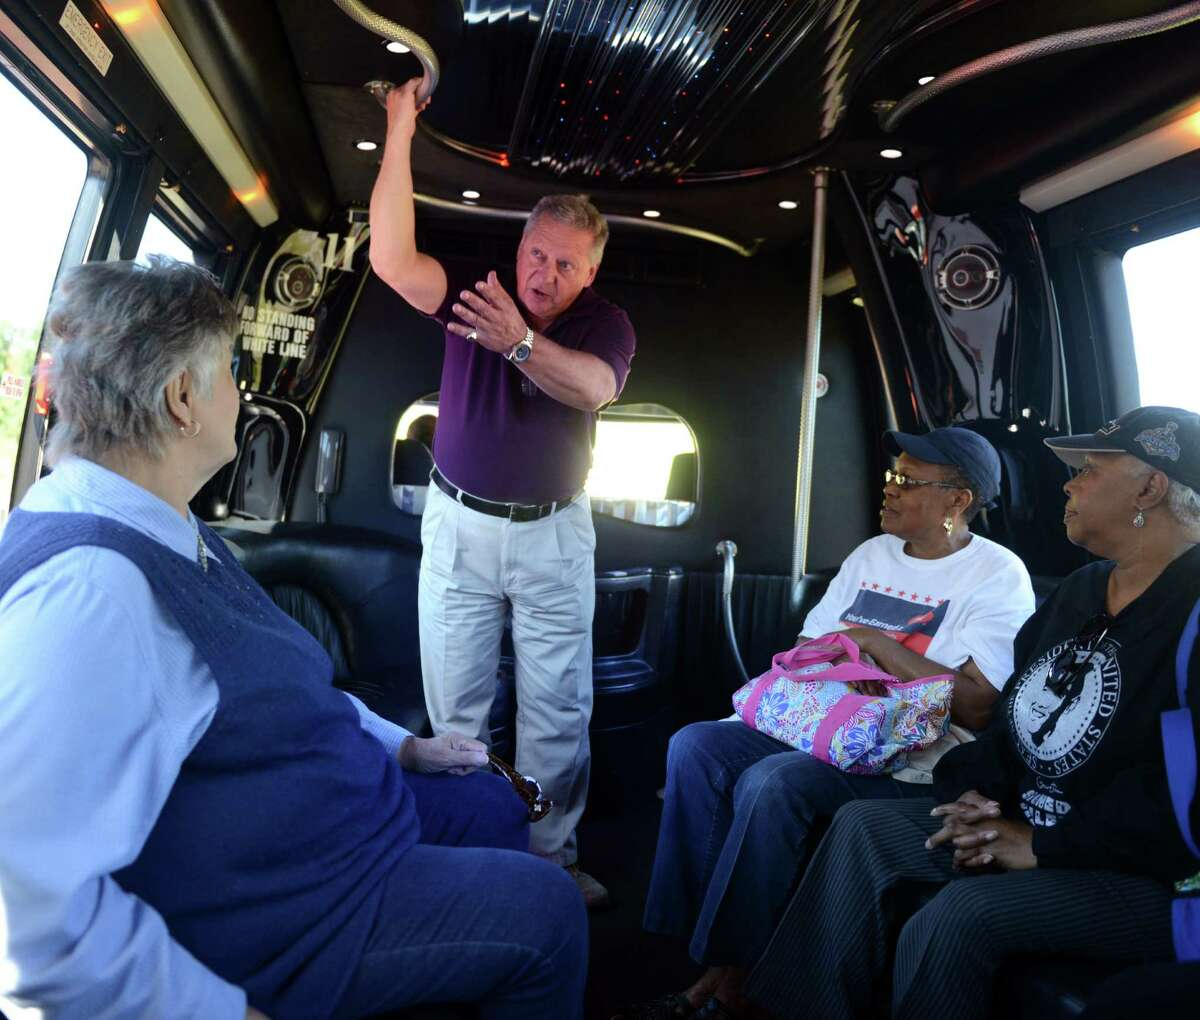 Thomas Stajkowski, a DuPont Construction Specialist, guides one of the public bus tours of the Lake Success Business Park, a 422-acre property and former Remington Arms site spread across Bridgeport and Stratford, Conn. Wednesday, Sept. 18, 2013.